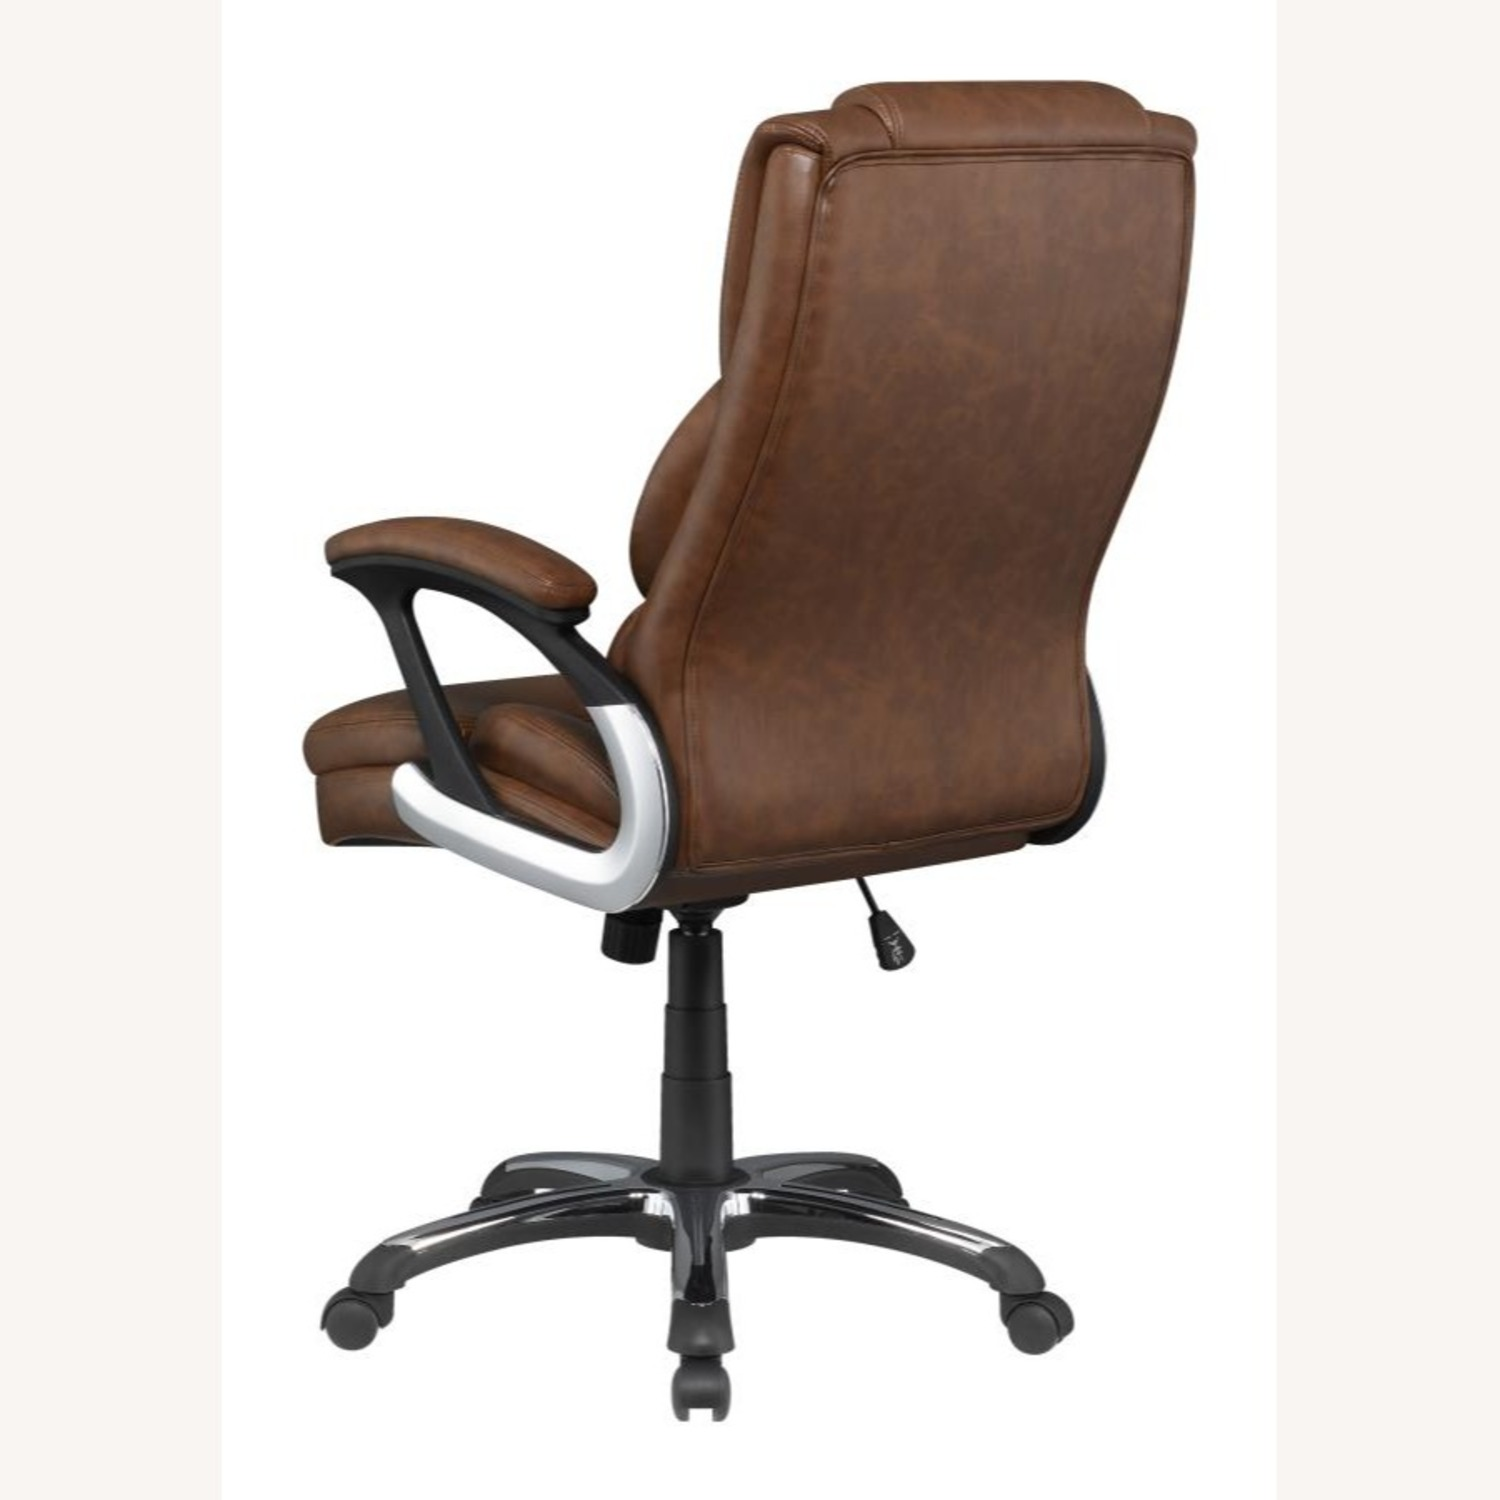 Office Chair In Tufted Brown Leatherette Finish - image-3